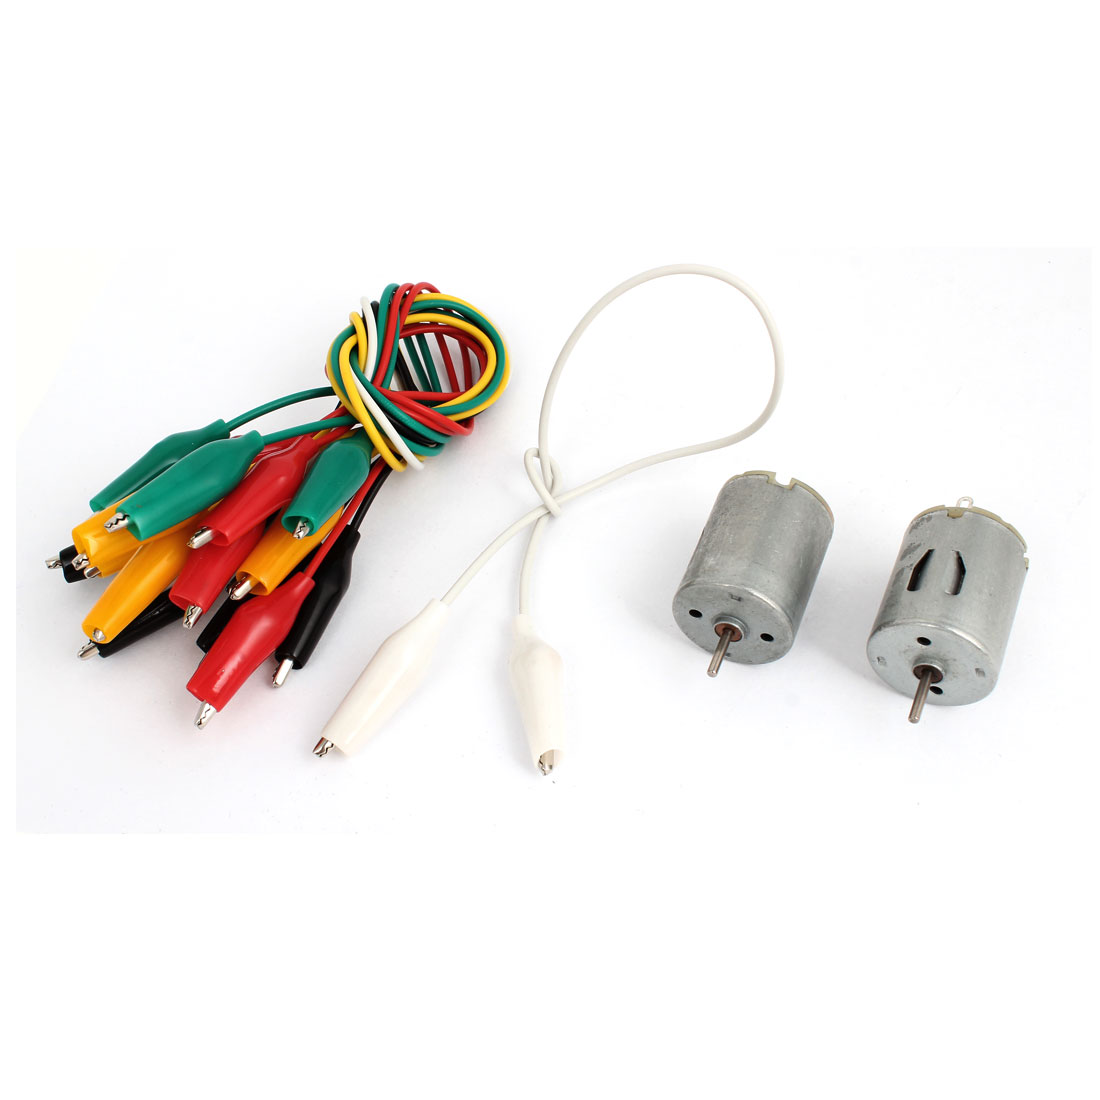 2Pcs DC 6V 2 Terminals Type 280 Miniature Mini High Torque Motor 9000RPM w Alligator Clip Cable